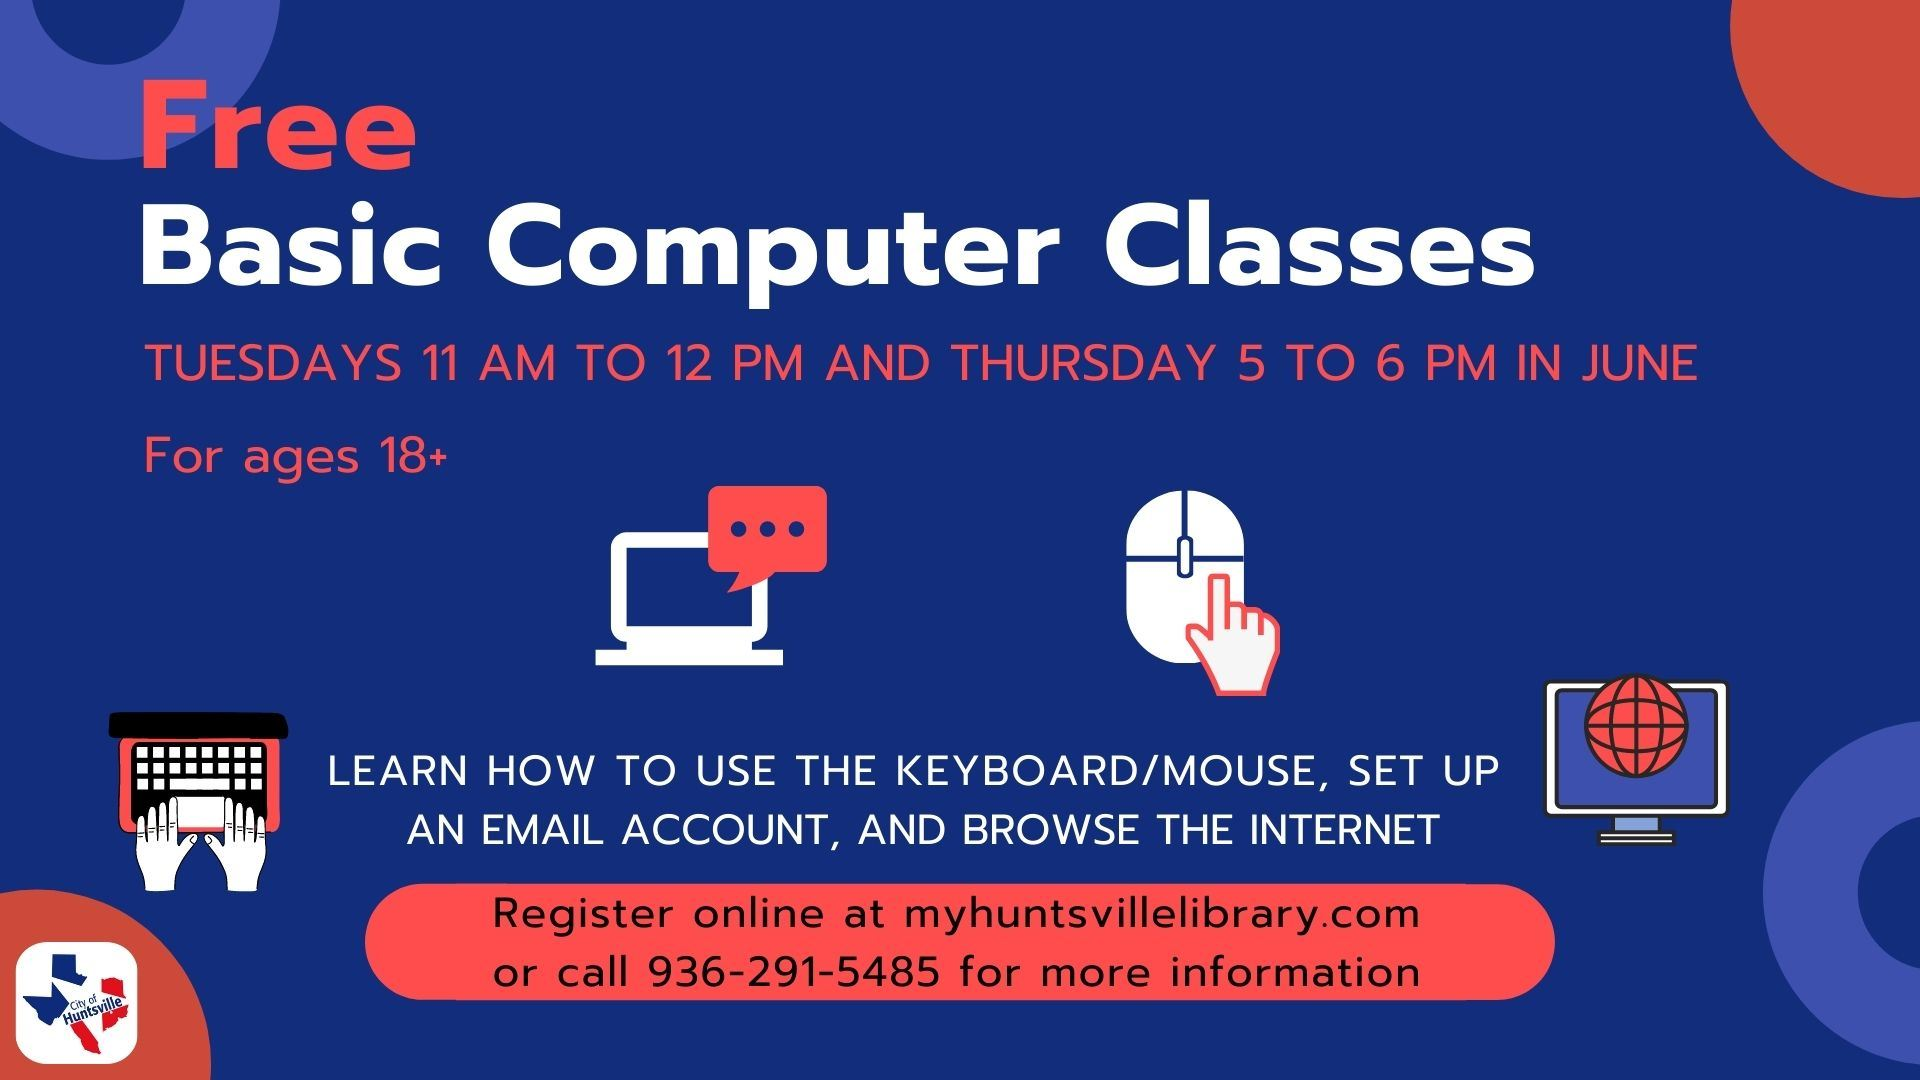 Free Basic Computer Classes June 2021